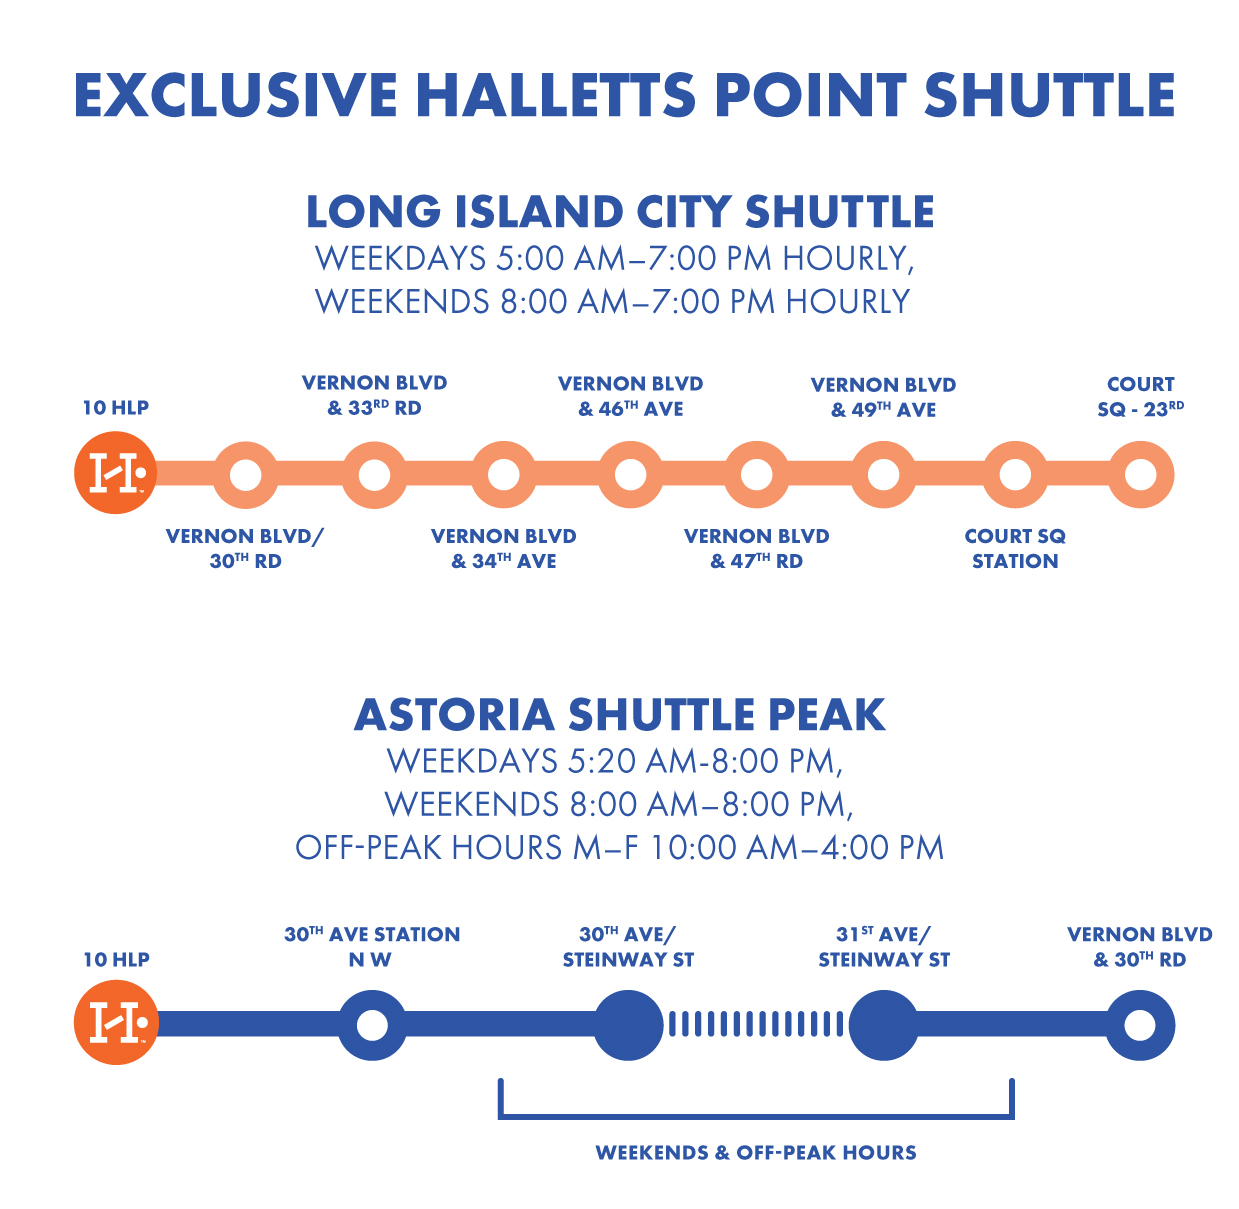 resident shuttle map legend